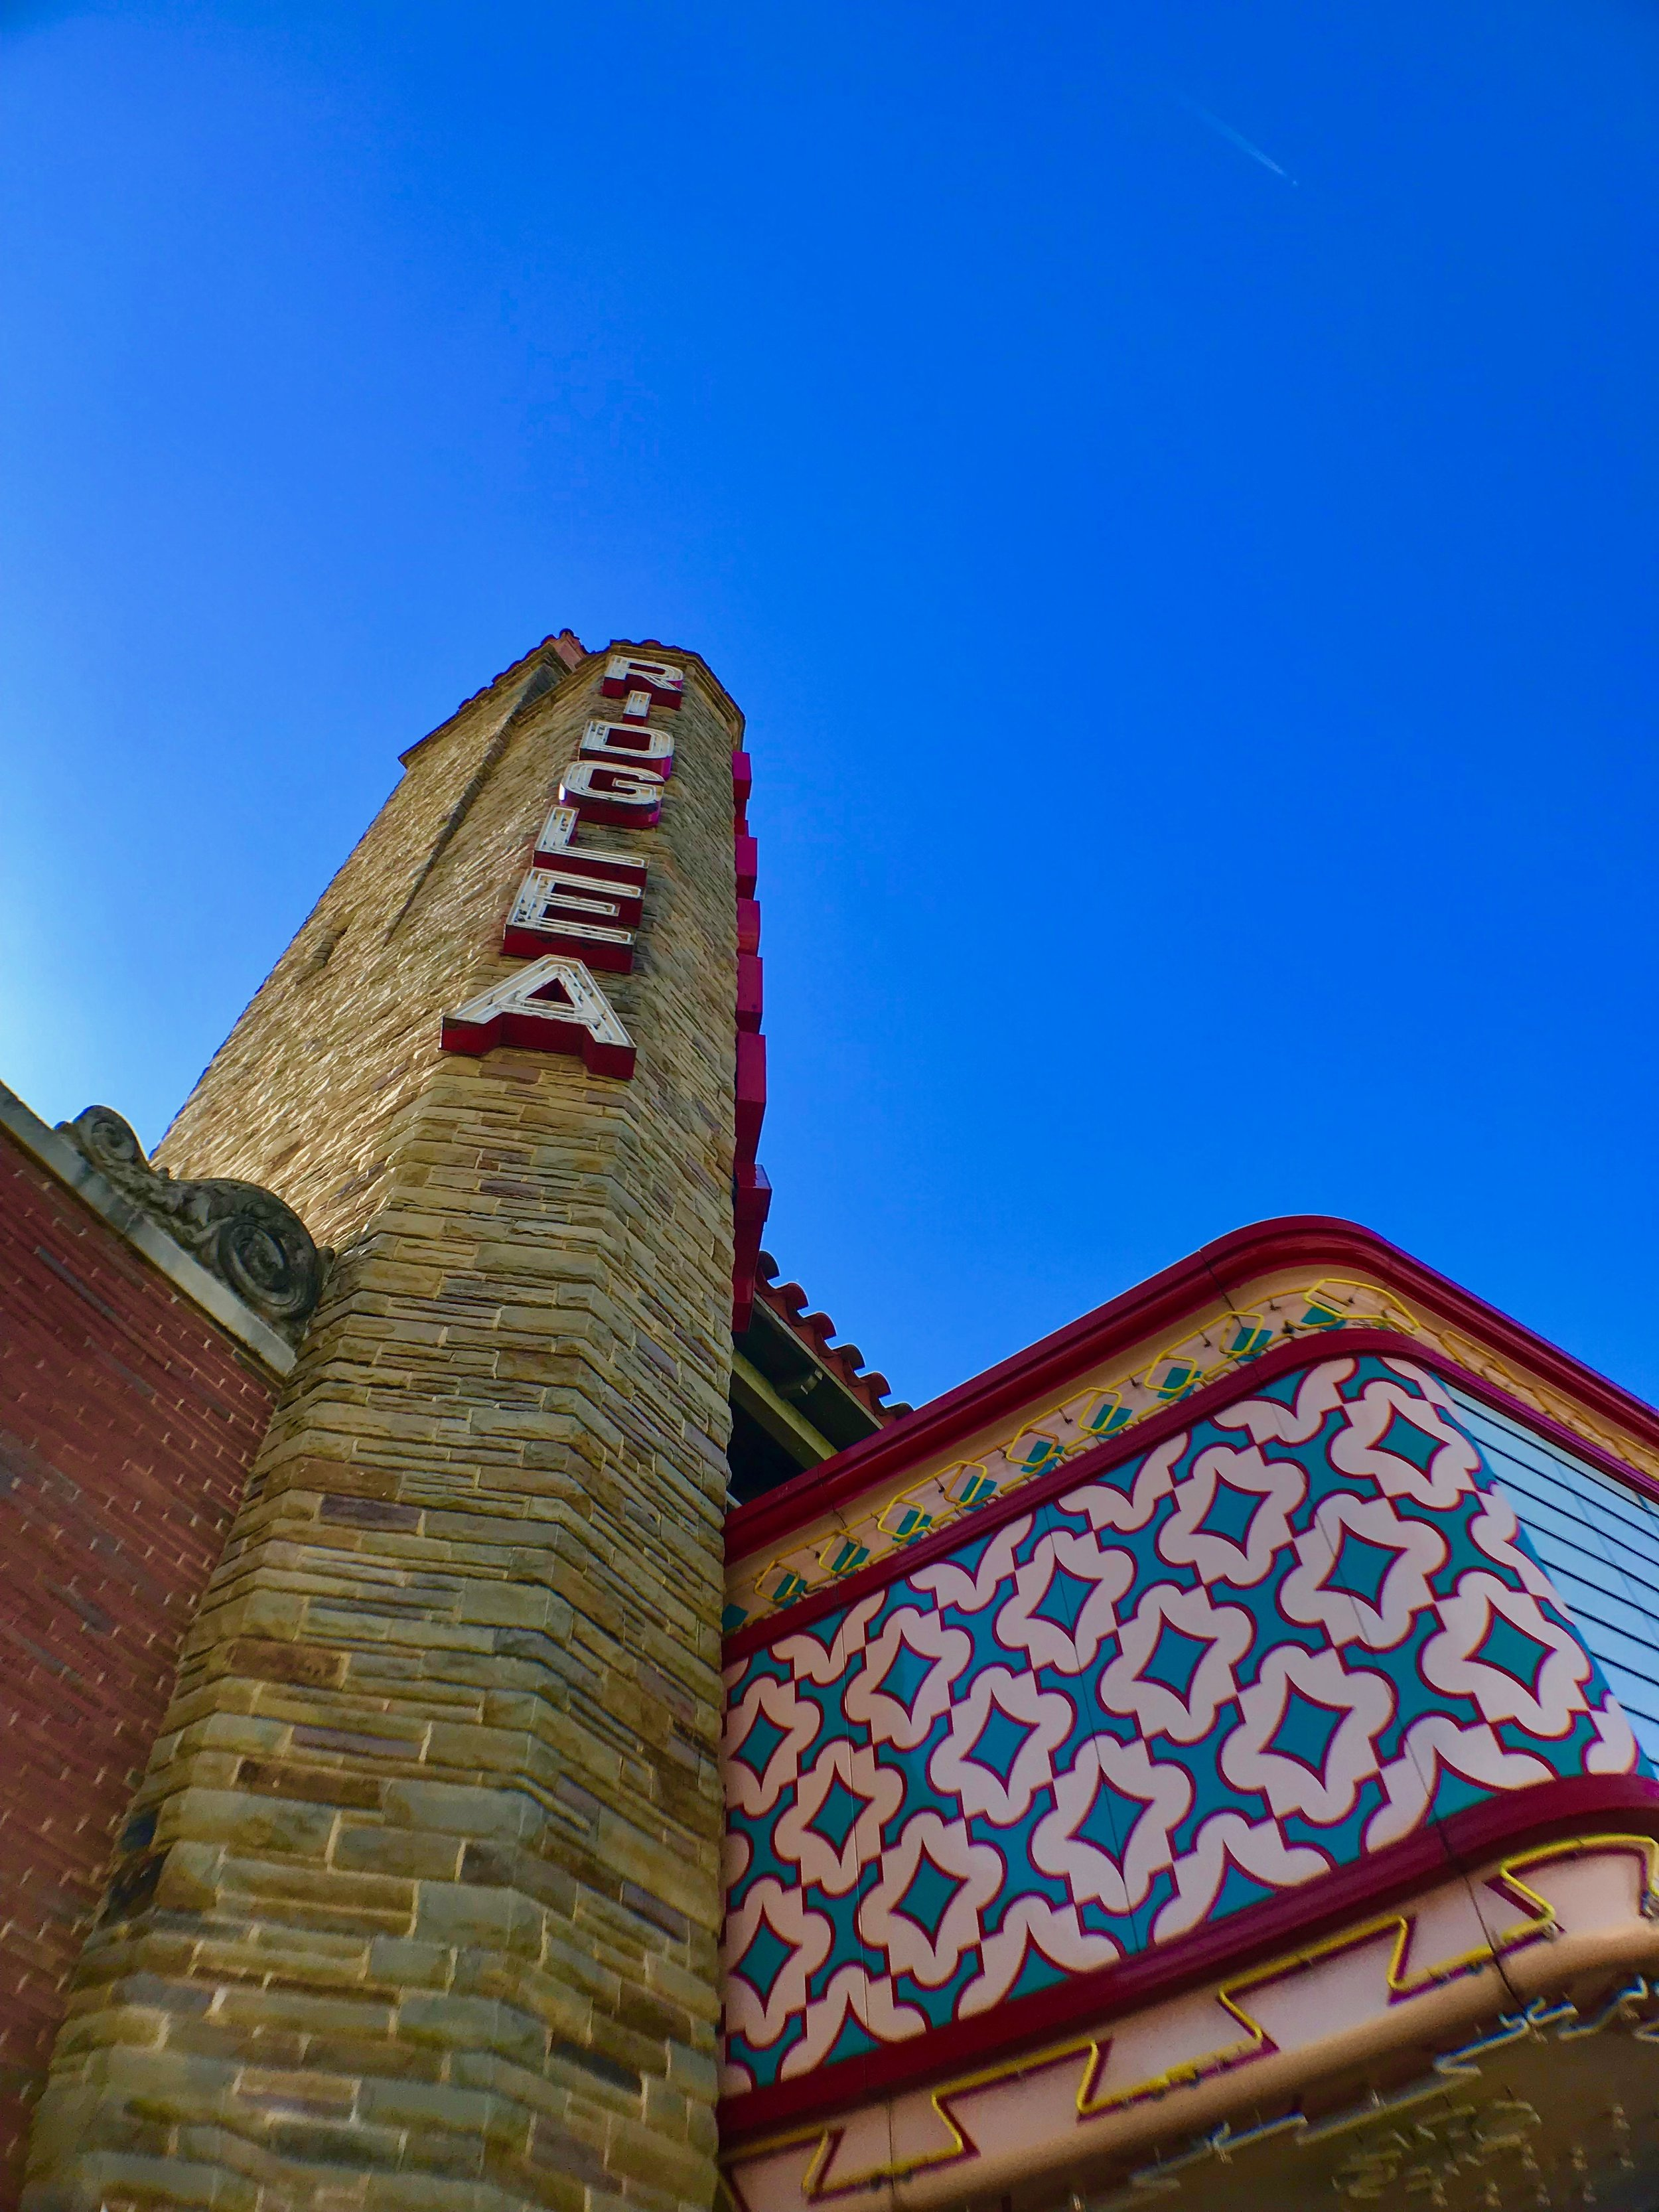 - Built in 1947 by Architect A.C. Luther, the beloved Ridglea Theater is now restored and re-living its former glory. The original 70-foot stone tower still stands as the iconic landmark of the west side, beckoning to all the DFW Metroplex. The Ridglea is located in the heart of the Camp Bowie District in Fort Worth. This charming neighborhood boasts fine dining, boutique shopping as well as the world-renowned Kimball Art Museum and The Modern.Since its beginning, a long list of nationally-acclaimed bands have made their mark in this legendary 20,000 square-foot historic venue. The Ridglea was once a premiere movie house featuring classic films of decades past. Now, thanks to the tireless efforts of new owner Jerry Shults, his daughter, Amy Herring and their associates, The Ridglea has been saved from demolition and listed on the National Registry of Historic Places, ensuring its legacy long into the future.In charge of restorations, Architect Sam Austin, of CMA Architecture, held The Ridglea restoration project close to his heart. Austin's father was the Chief Projectionist for the original Ridglea Theater build. Much of Sam's childhood was spent watching movies, cartoons, and newsreels at the Ridglea Theater.Today, The Ridglea is revived to its authentic allure, recovering the unique Spanish-Mediterranean elements. Details like the original terrazzo tile floor featuring the intricate compass rose. The panoramic mural, by famed artist Eugene Gilboe, captures your eyes the moment you step inside. Restored to its historical beauty, the main theater and grande balcony are reminiscent of old movie houses. Although The Ridglea Theater has the area's largest traditional movie screen, it also houses a state-of-the-art sound system and many modern amenities.Magnificently restored and newly renovated, The Ridglea now offers three options for events: The Ridglea Theater, The Ridglea Room & The Ridglea Lounge. The Ridglea is an ideal venue for film festivals, symphony orchest